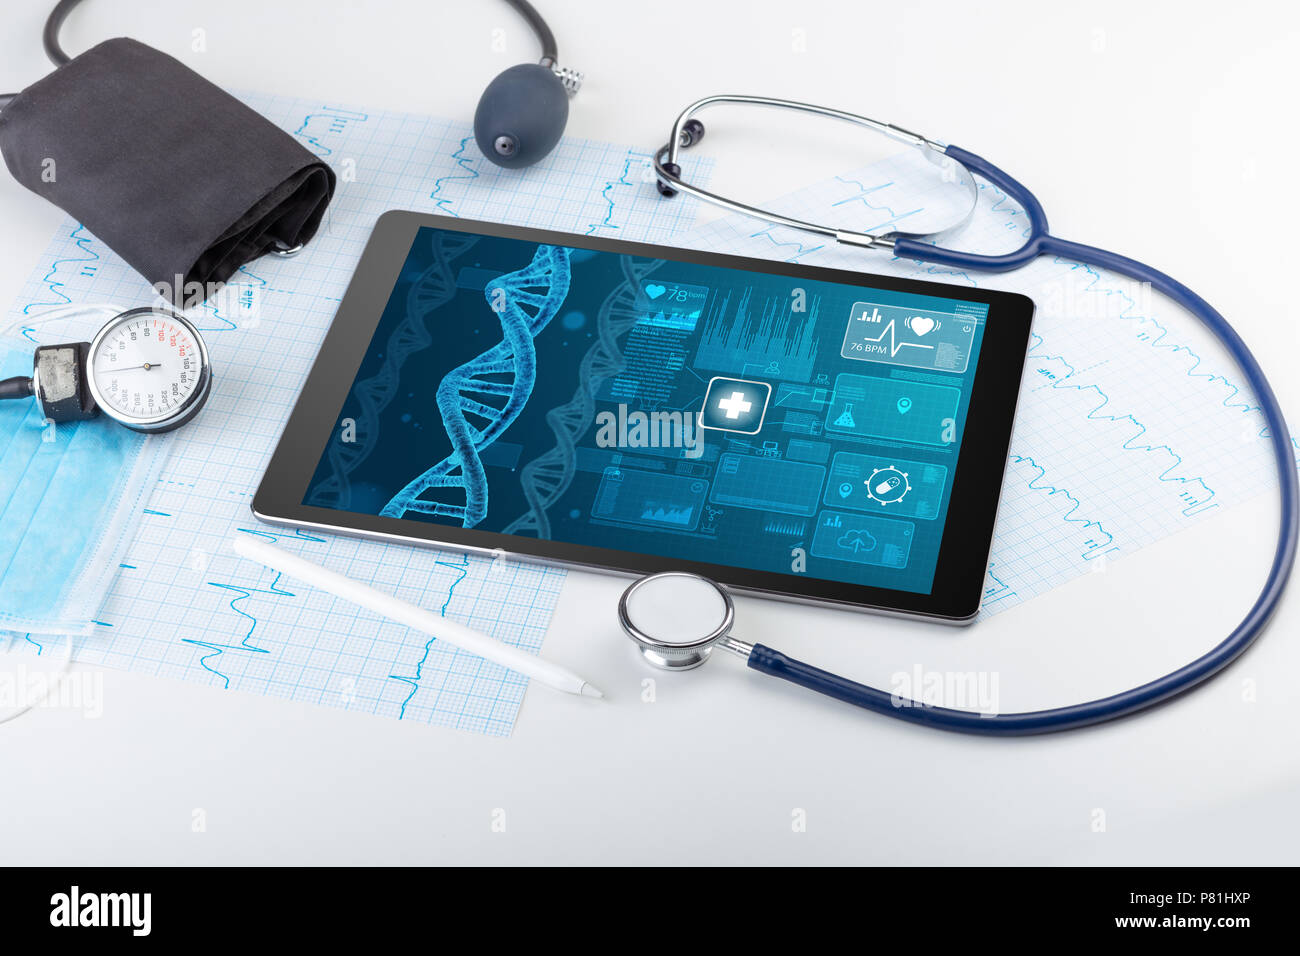 Genetic test and biotechnology concept with medical technology devices  - Stock Image